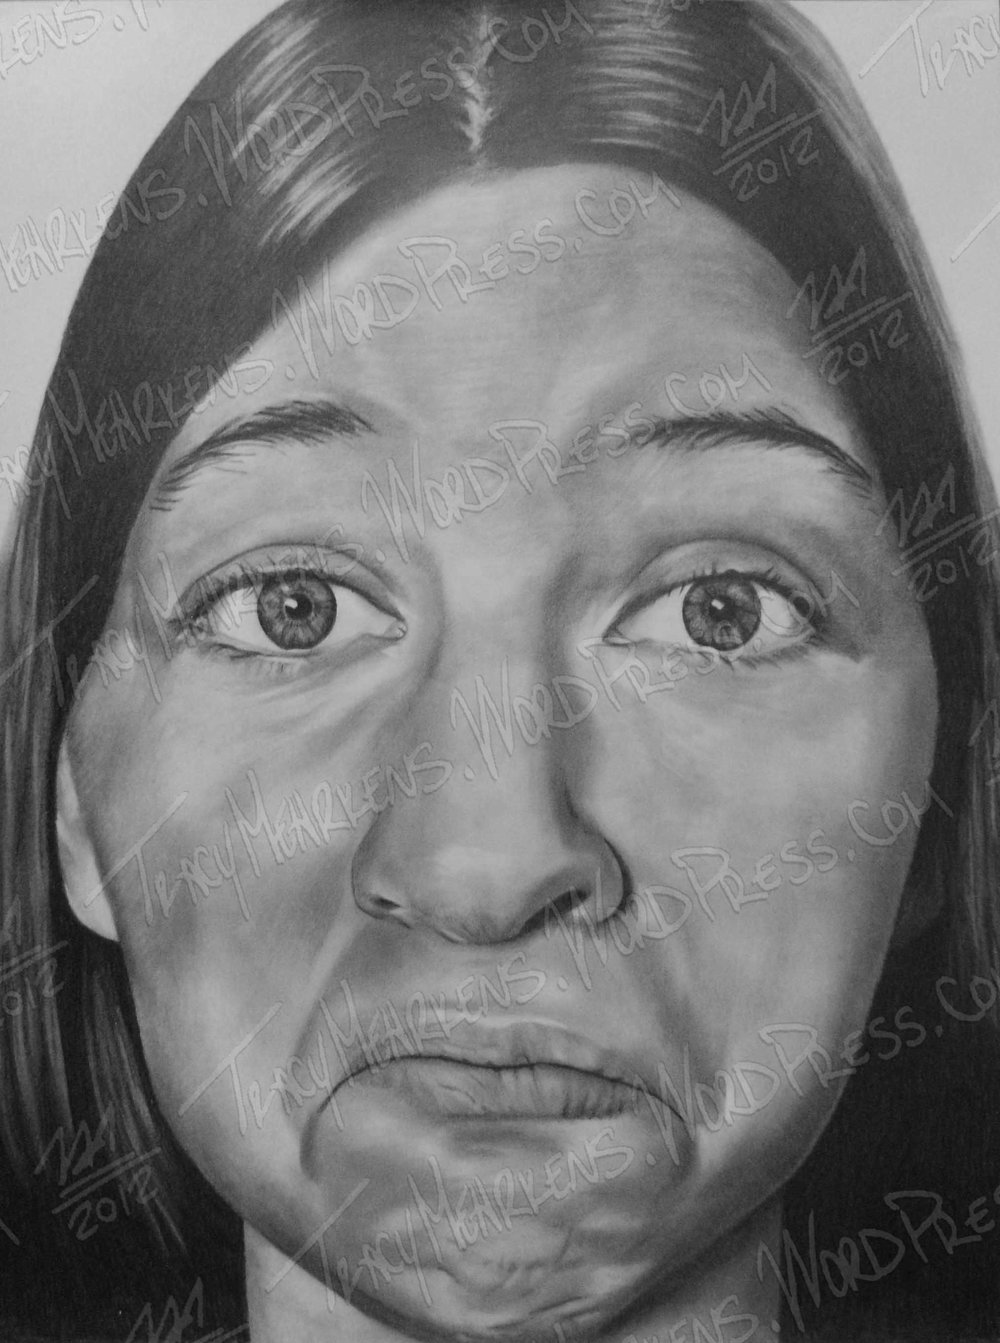 Copy of Self. Graphite on Paper. 18x24 in. 2012.